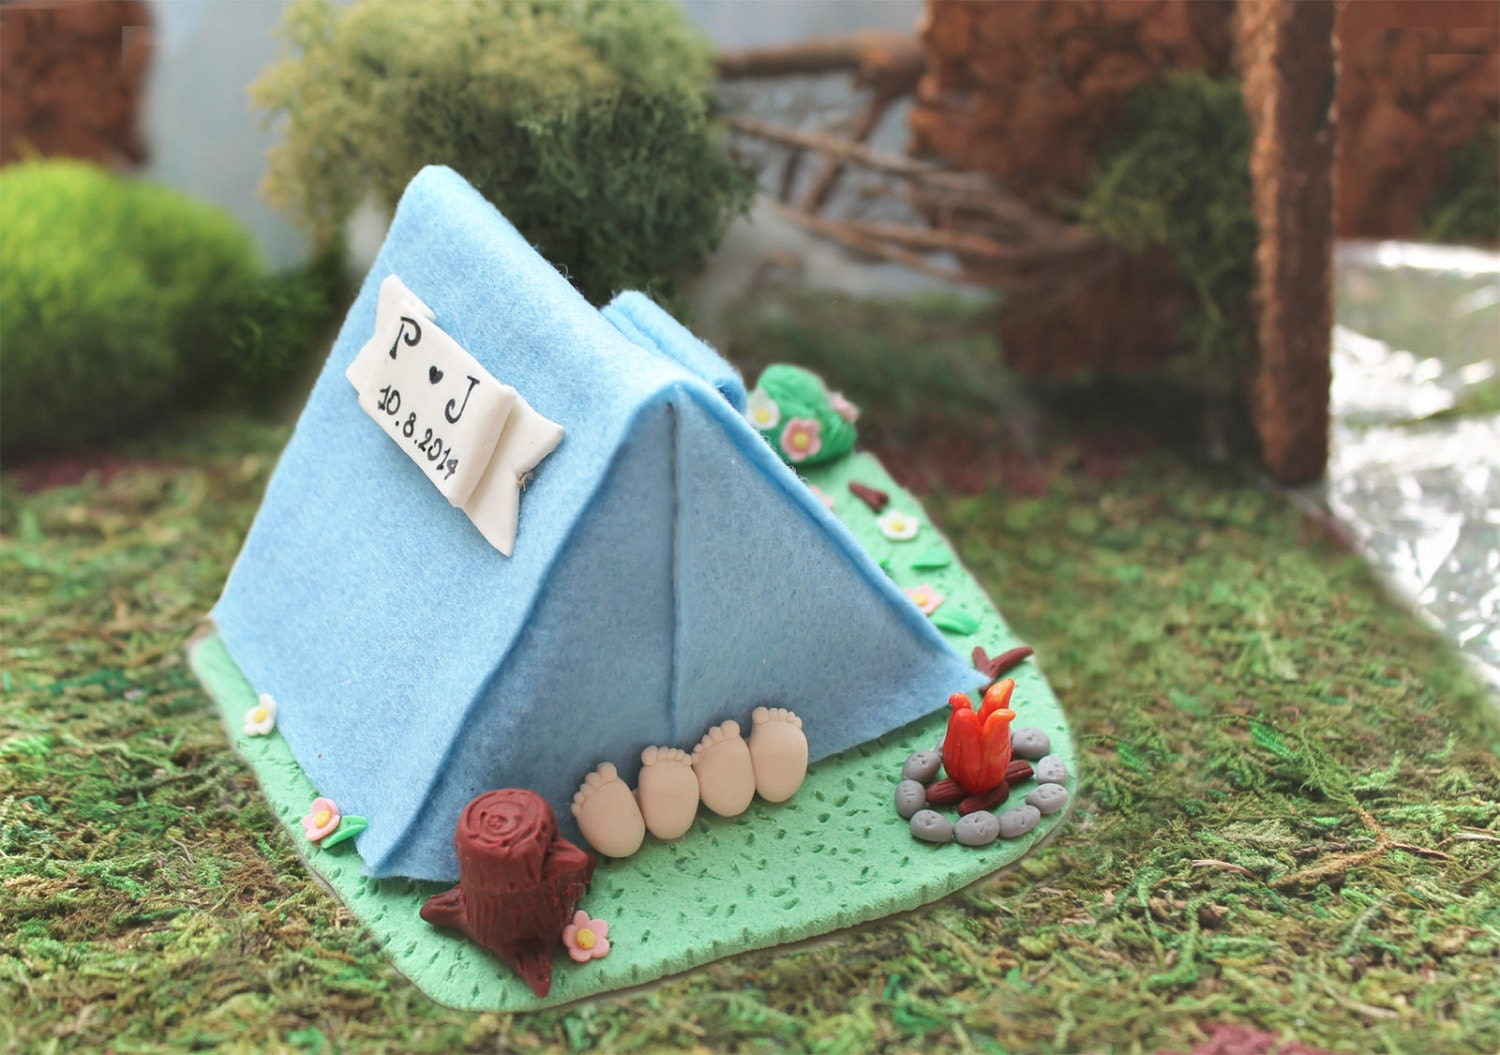 Camping tent wedding cake topper funny personalized cute